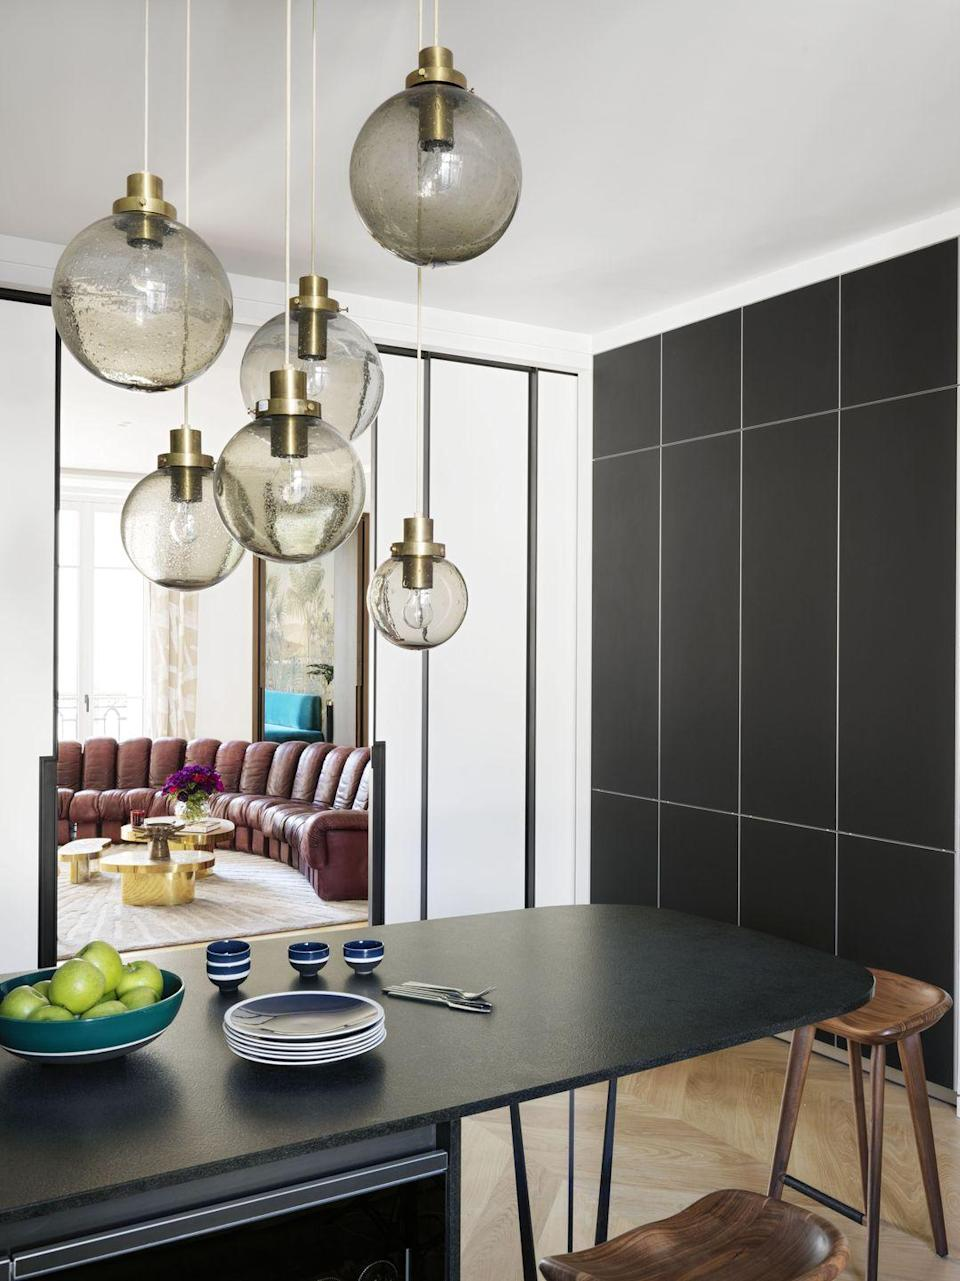 """<p>Floor-to-ceiling """"locker"""" cabinets along one wall of this Paris kitchen designed by Raphaël Le Berre and Thomas Vevaud maximize storage space.</p>"""